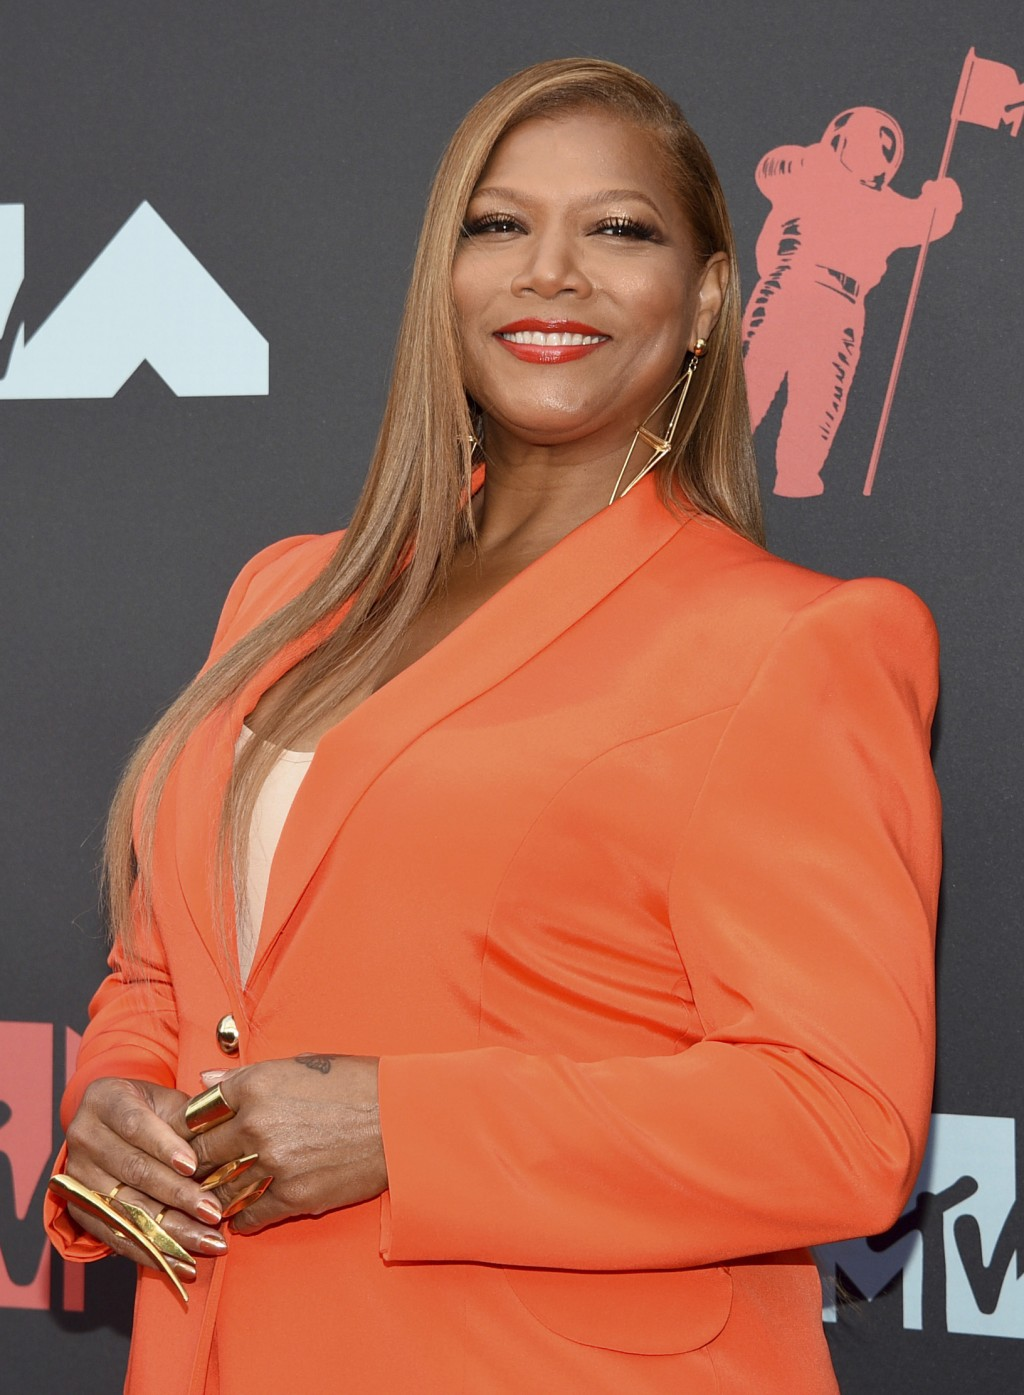 FILE - Queen Latifah arrives at the MTV Video Music Awards on Aug. 26, 2019, in Newark, N.J. Queen Latifah will be honored at Sunday's BET Awards. (Ph...